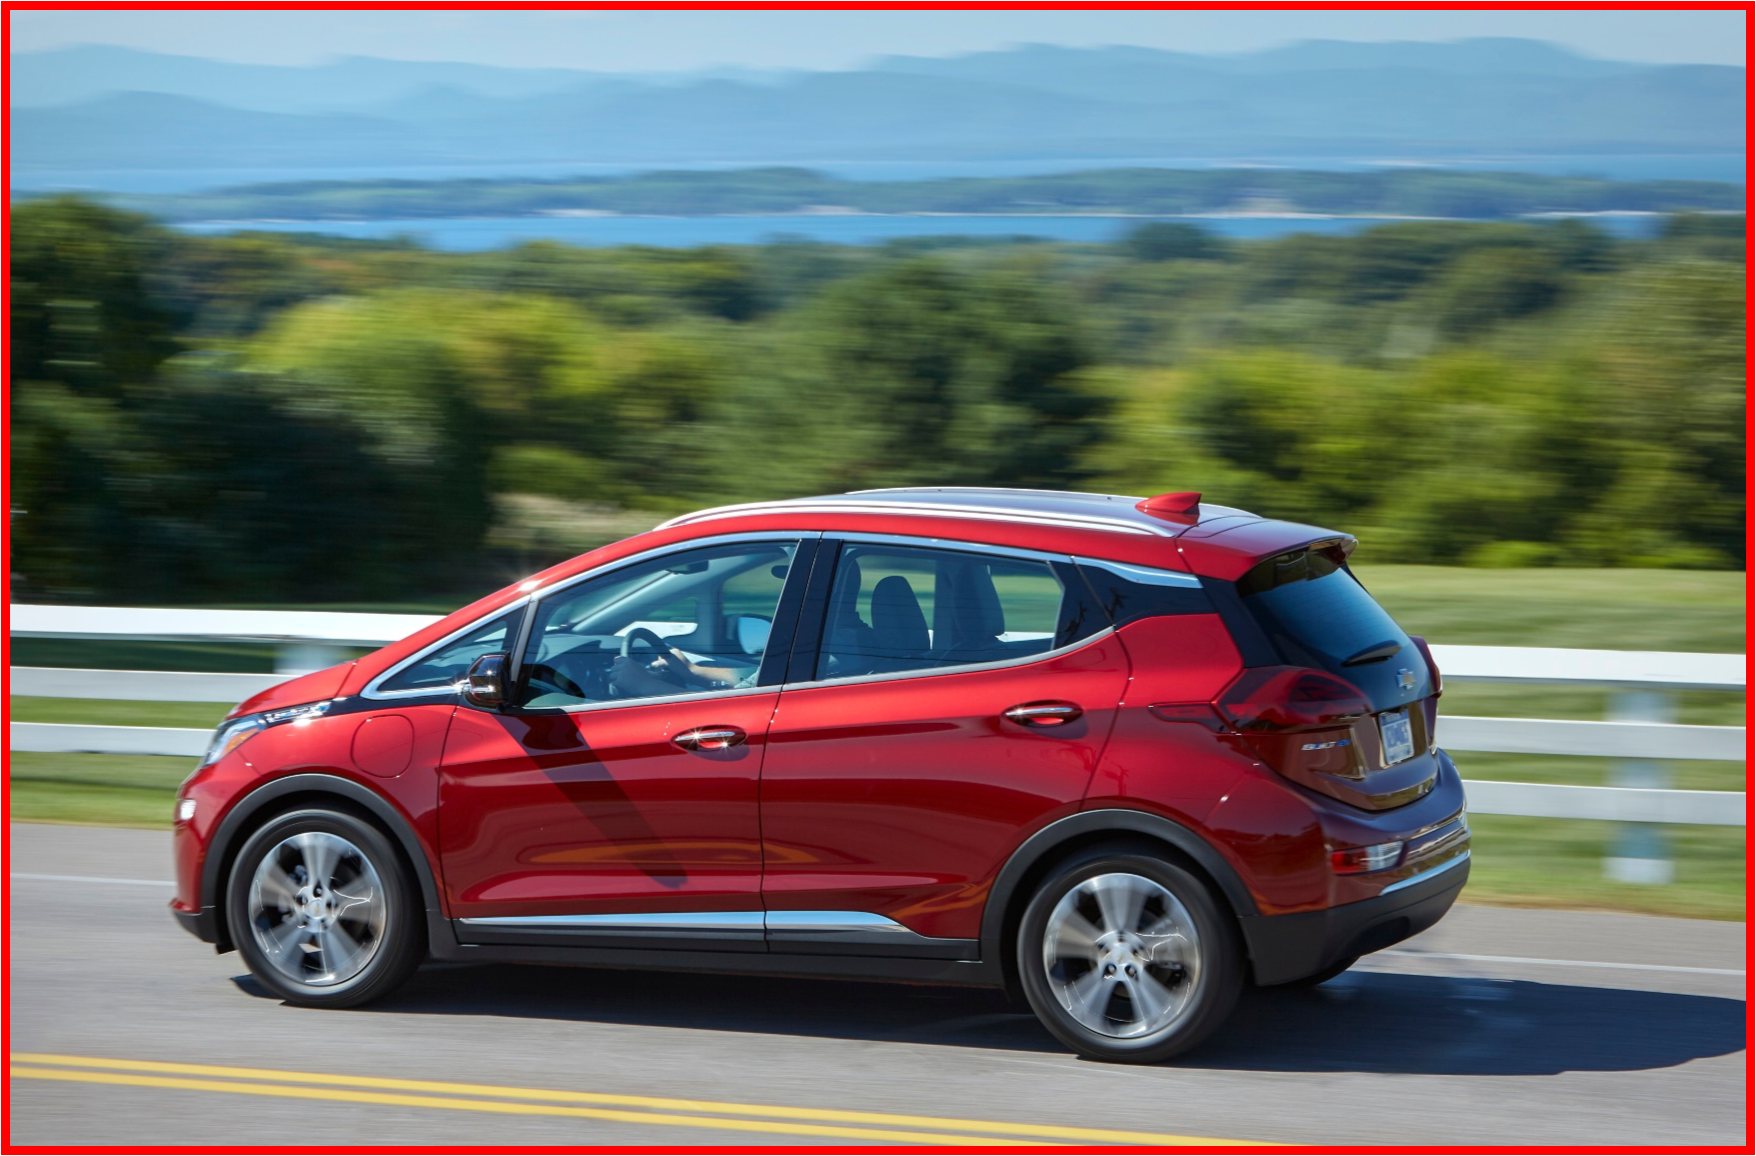 AutoInformed.com on 2020 Chevrolet Bolt EV